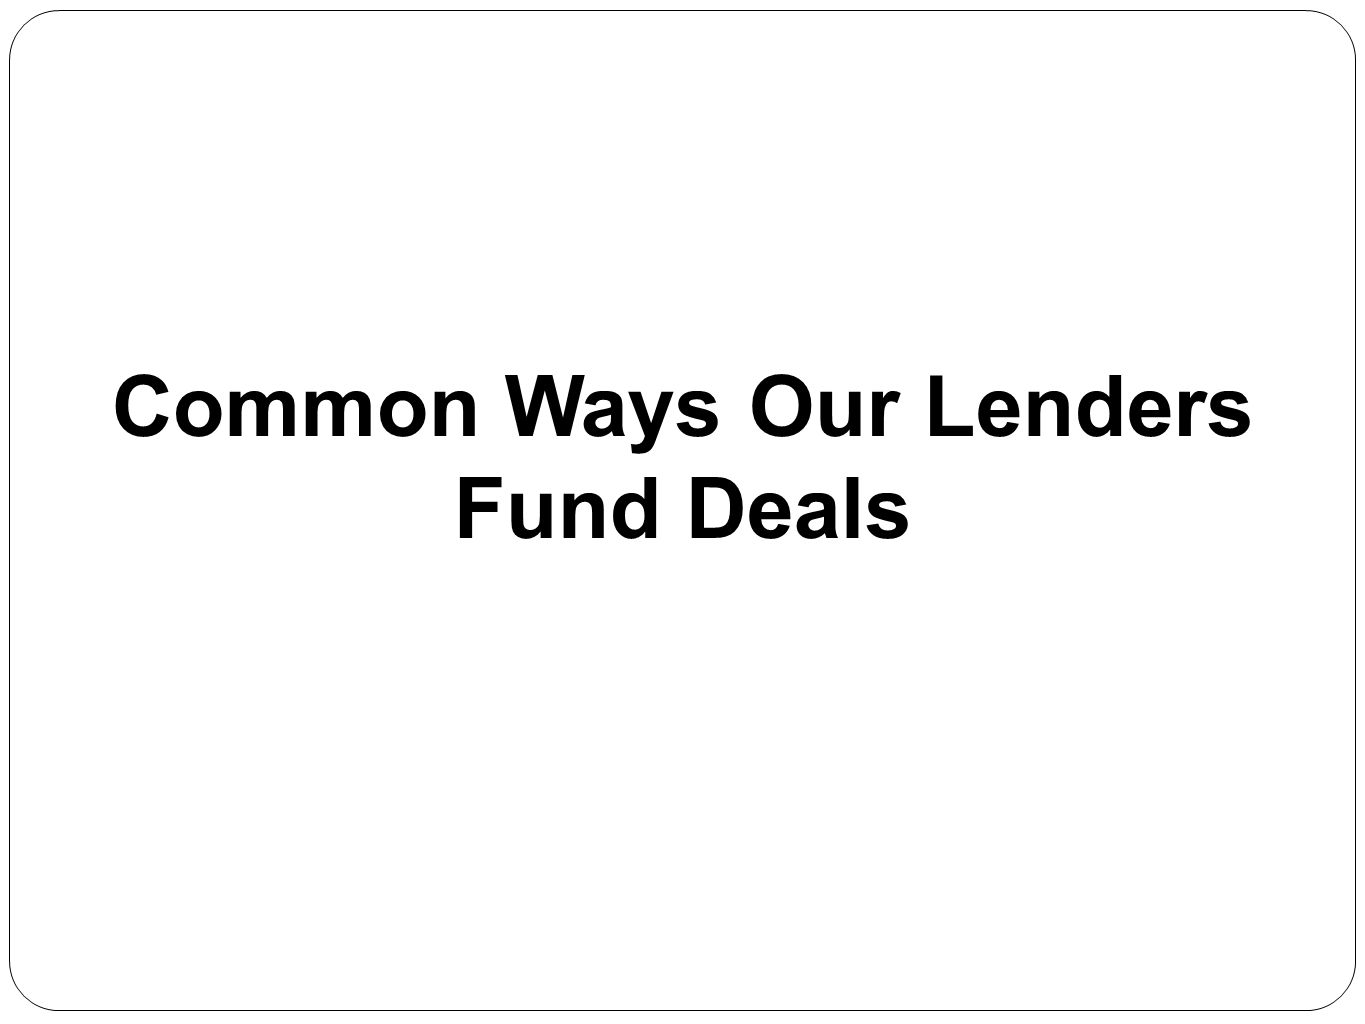 Common Ways Our Lenders